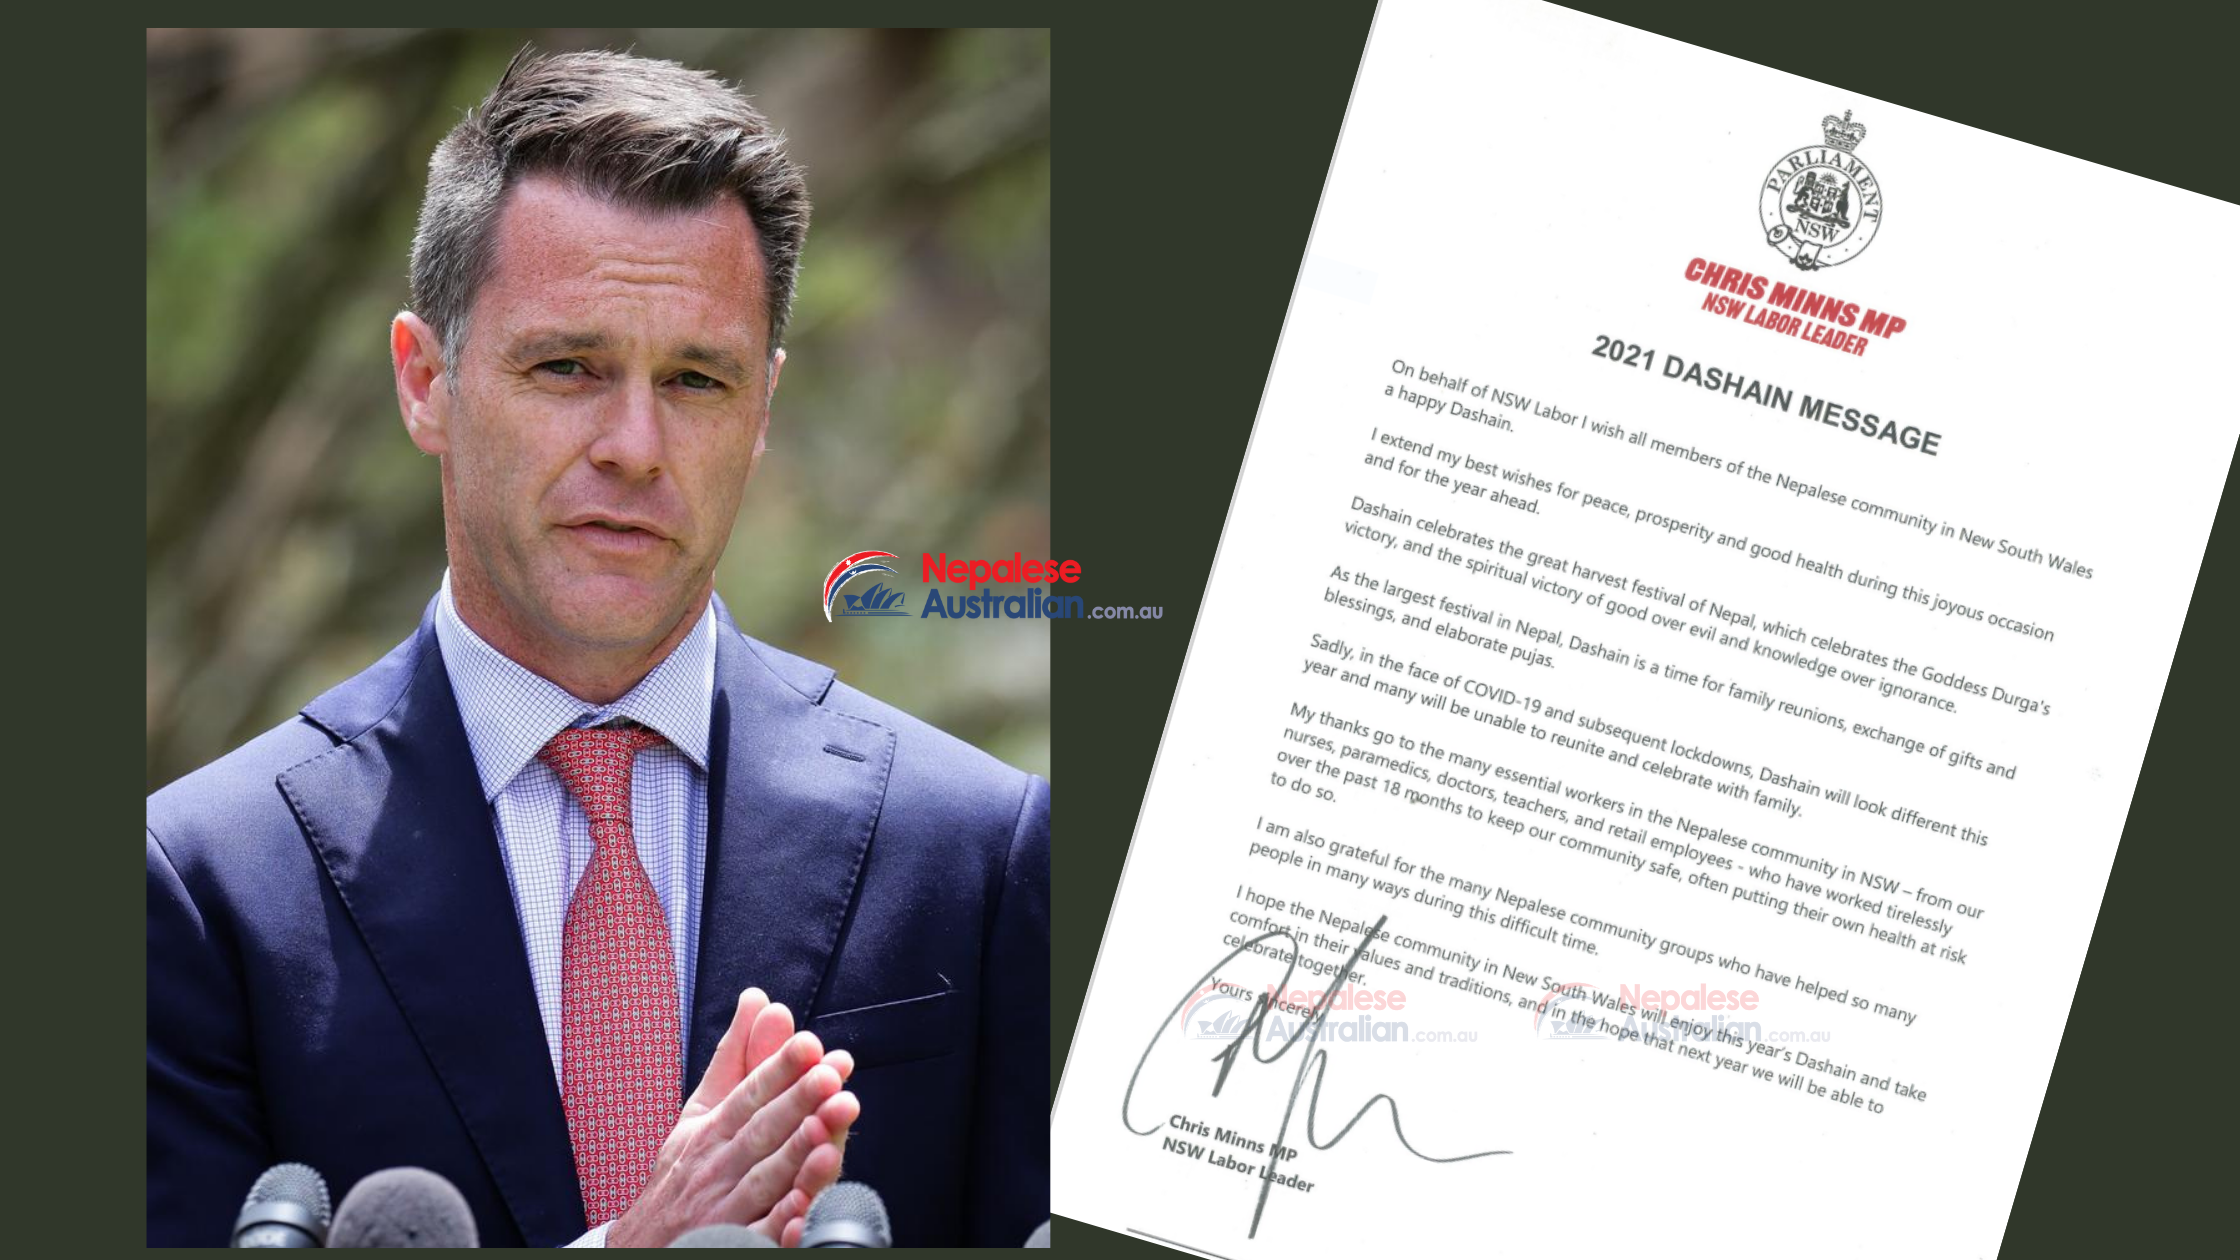 NSW Opposition Leader Chris Minns Extends Dashain Greetings to Nepalese Community